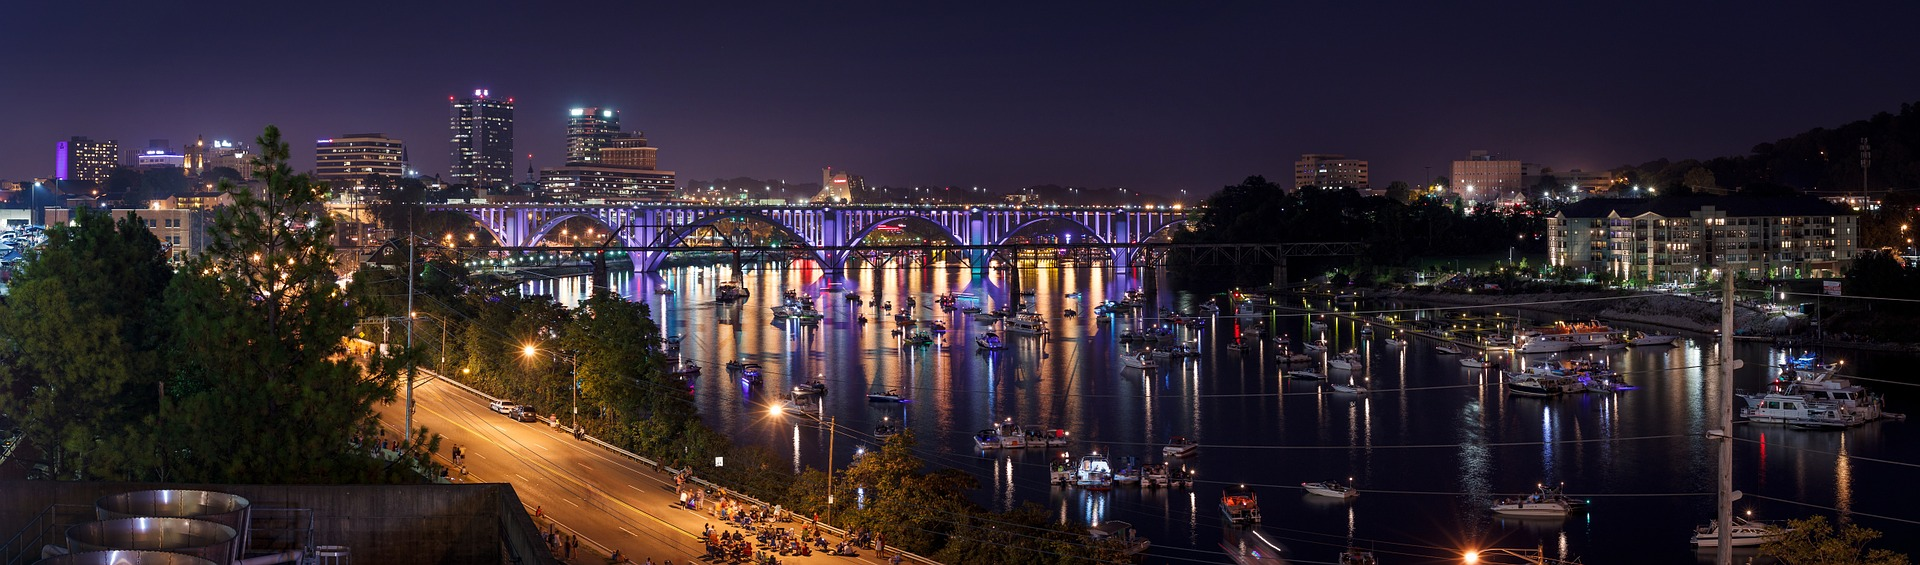 A View of Knoxville Tennessee at Night | Kids Car Donations